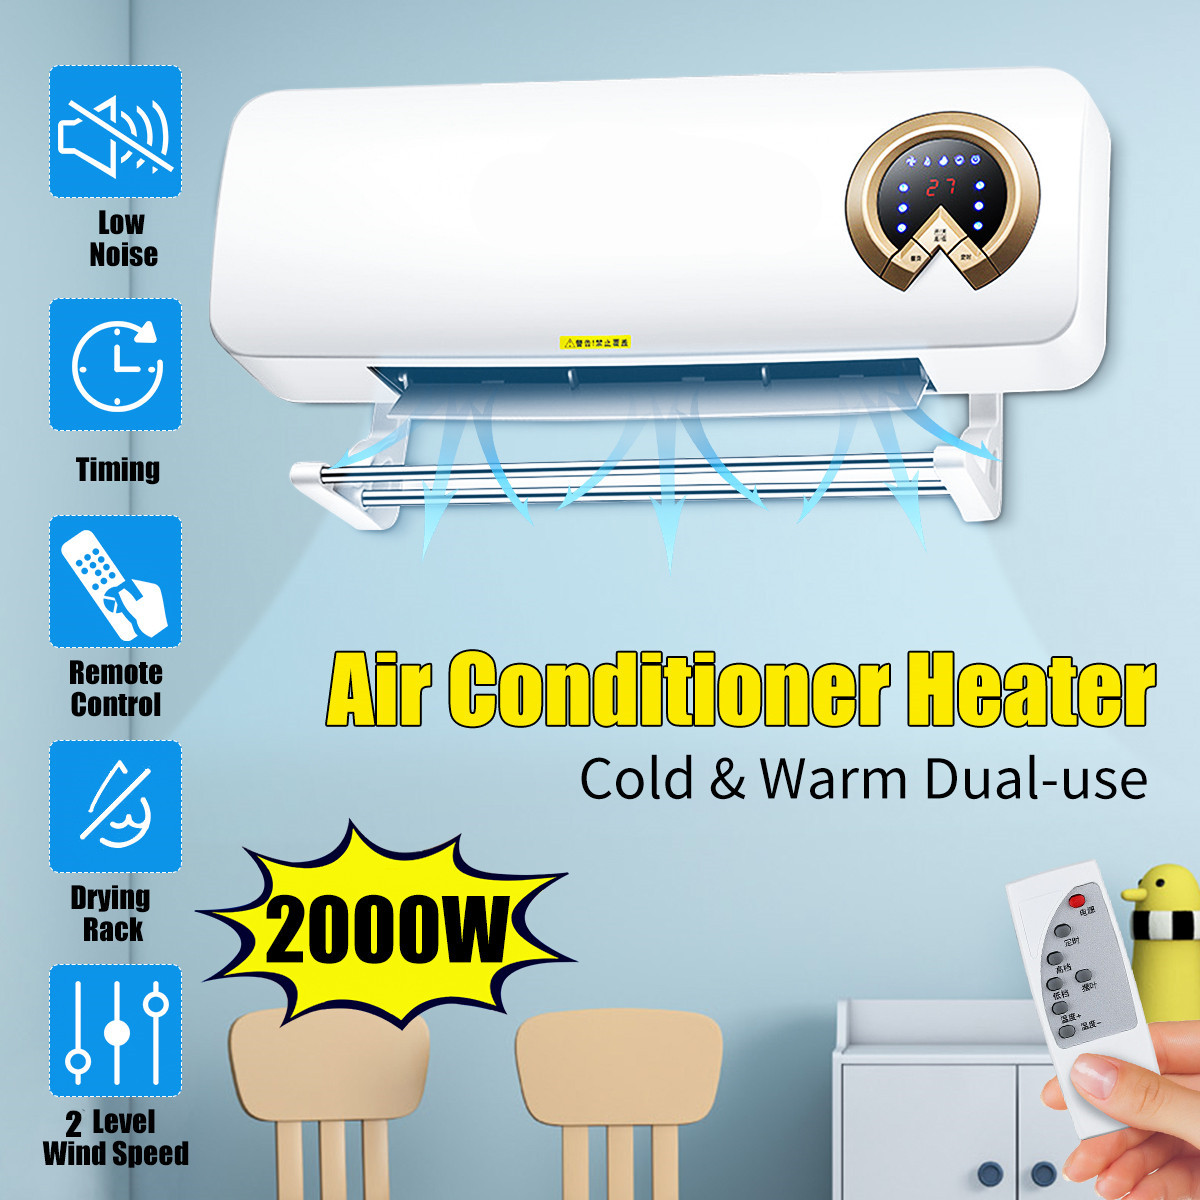 2000W Wall Mounted Air Cooler Conditioner Heater Fan Heating Cooling Room Bathroom Waterproof Remote Control Air Conditioning